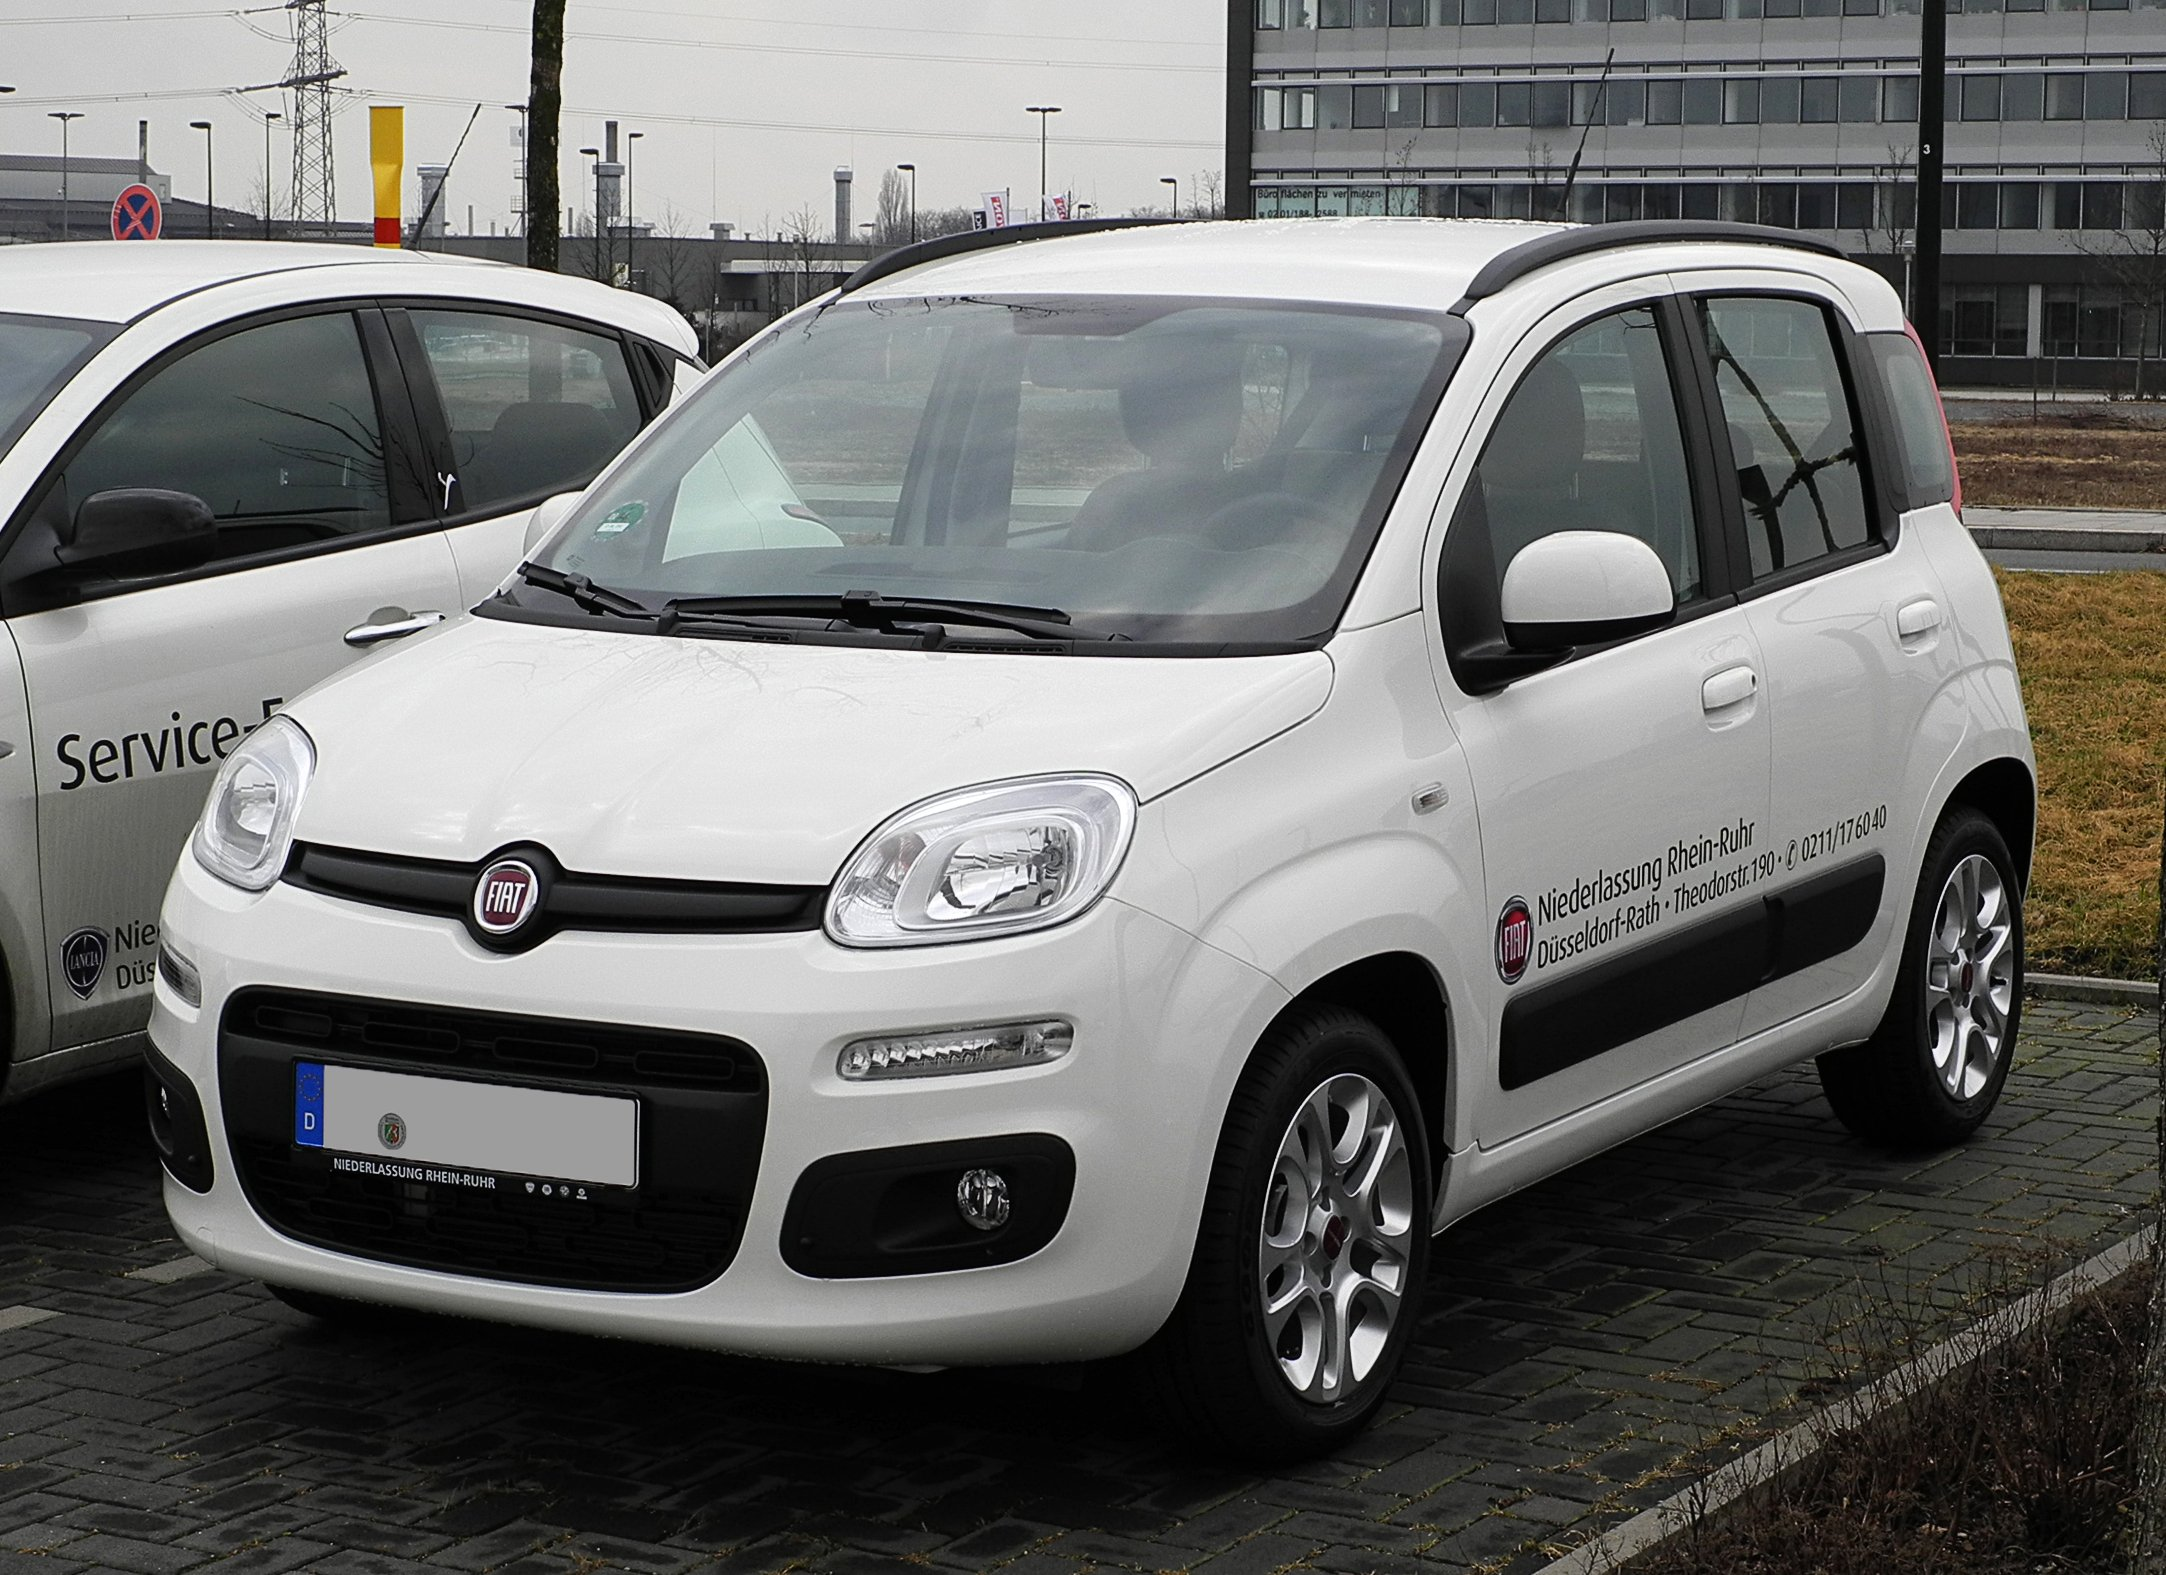 Fiat Looks To Buttress 500, Panda With Low-Cost Car